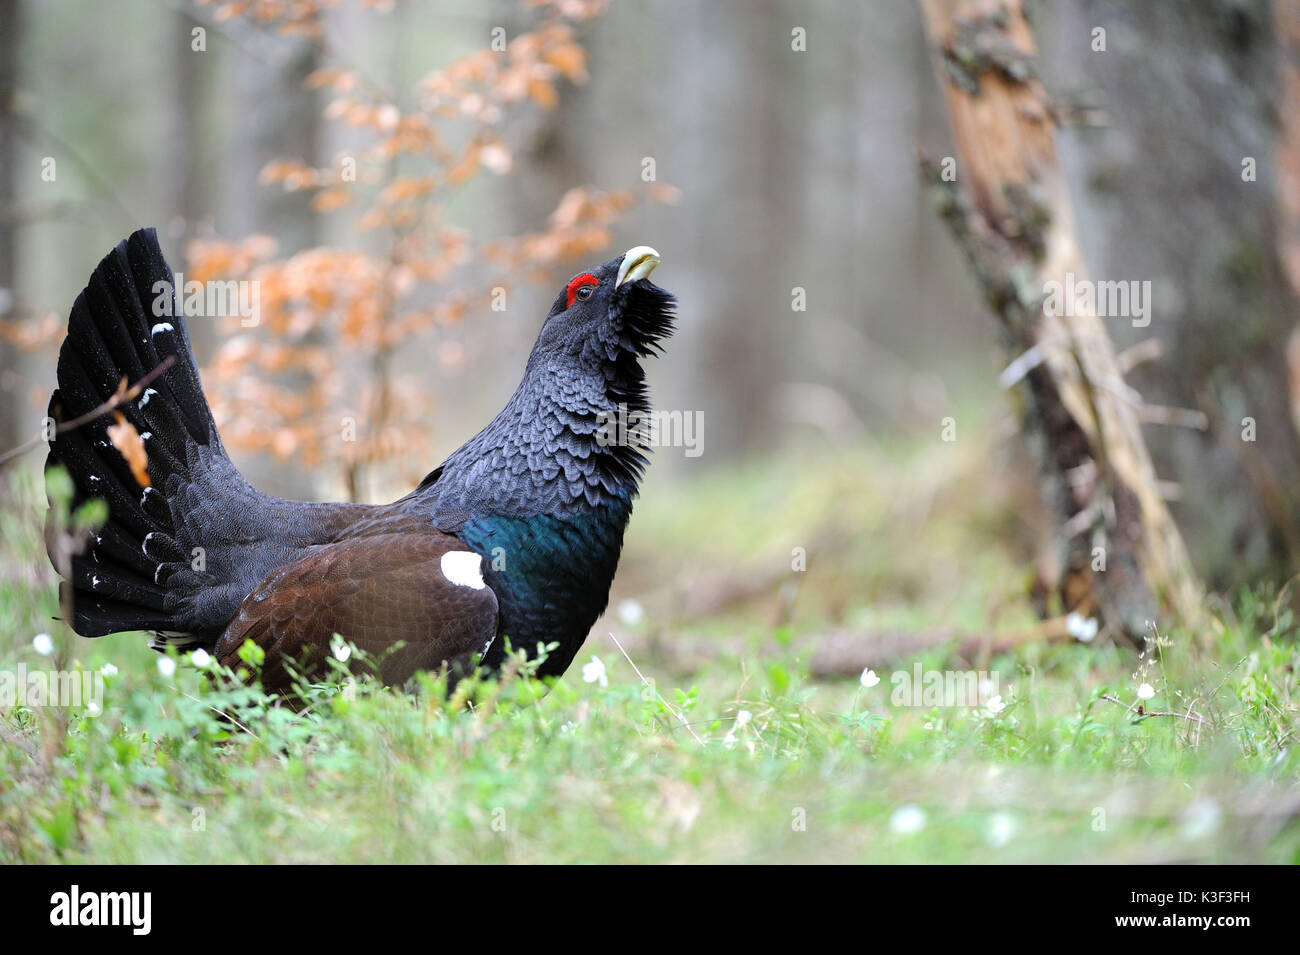 Capercaillie, courtship display in the Bavarian alps Stock Photo